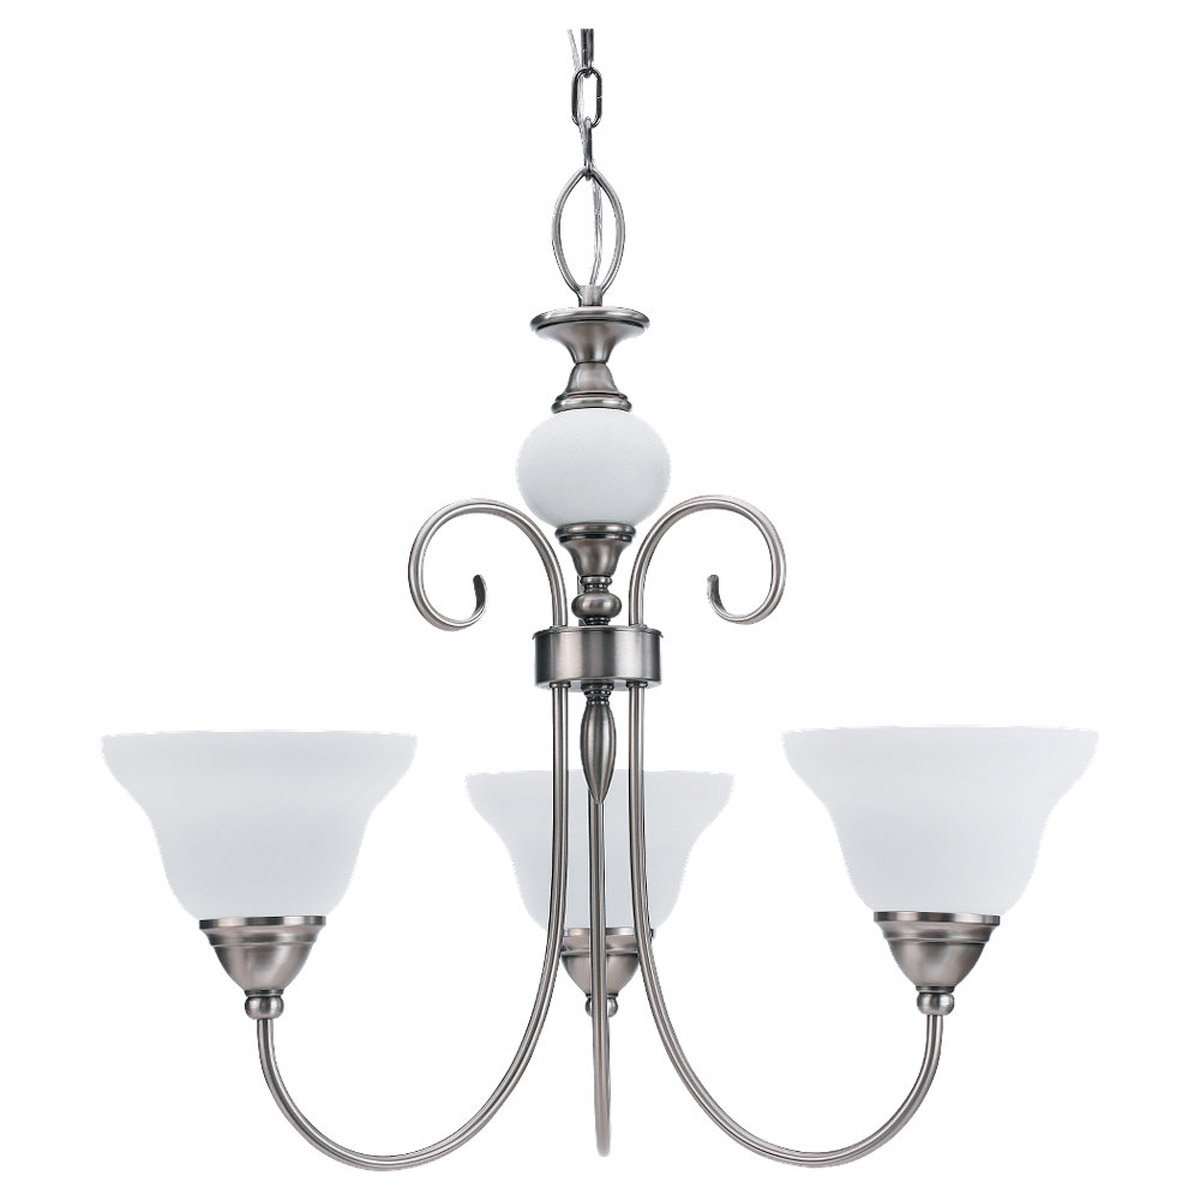 Sea Gull Lighting Montclaire 3 Light Chandelier in Antique Brushed Nickel 31105BLE-965